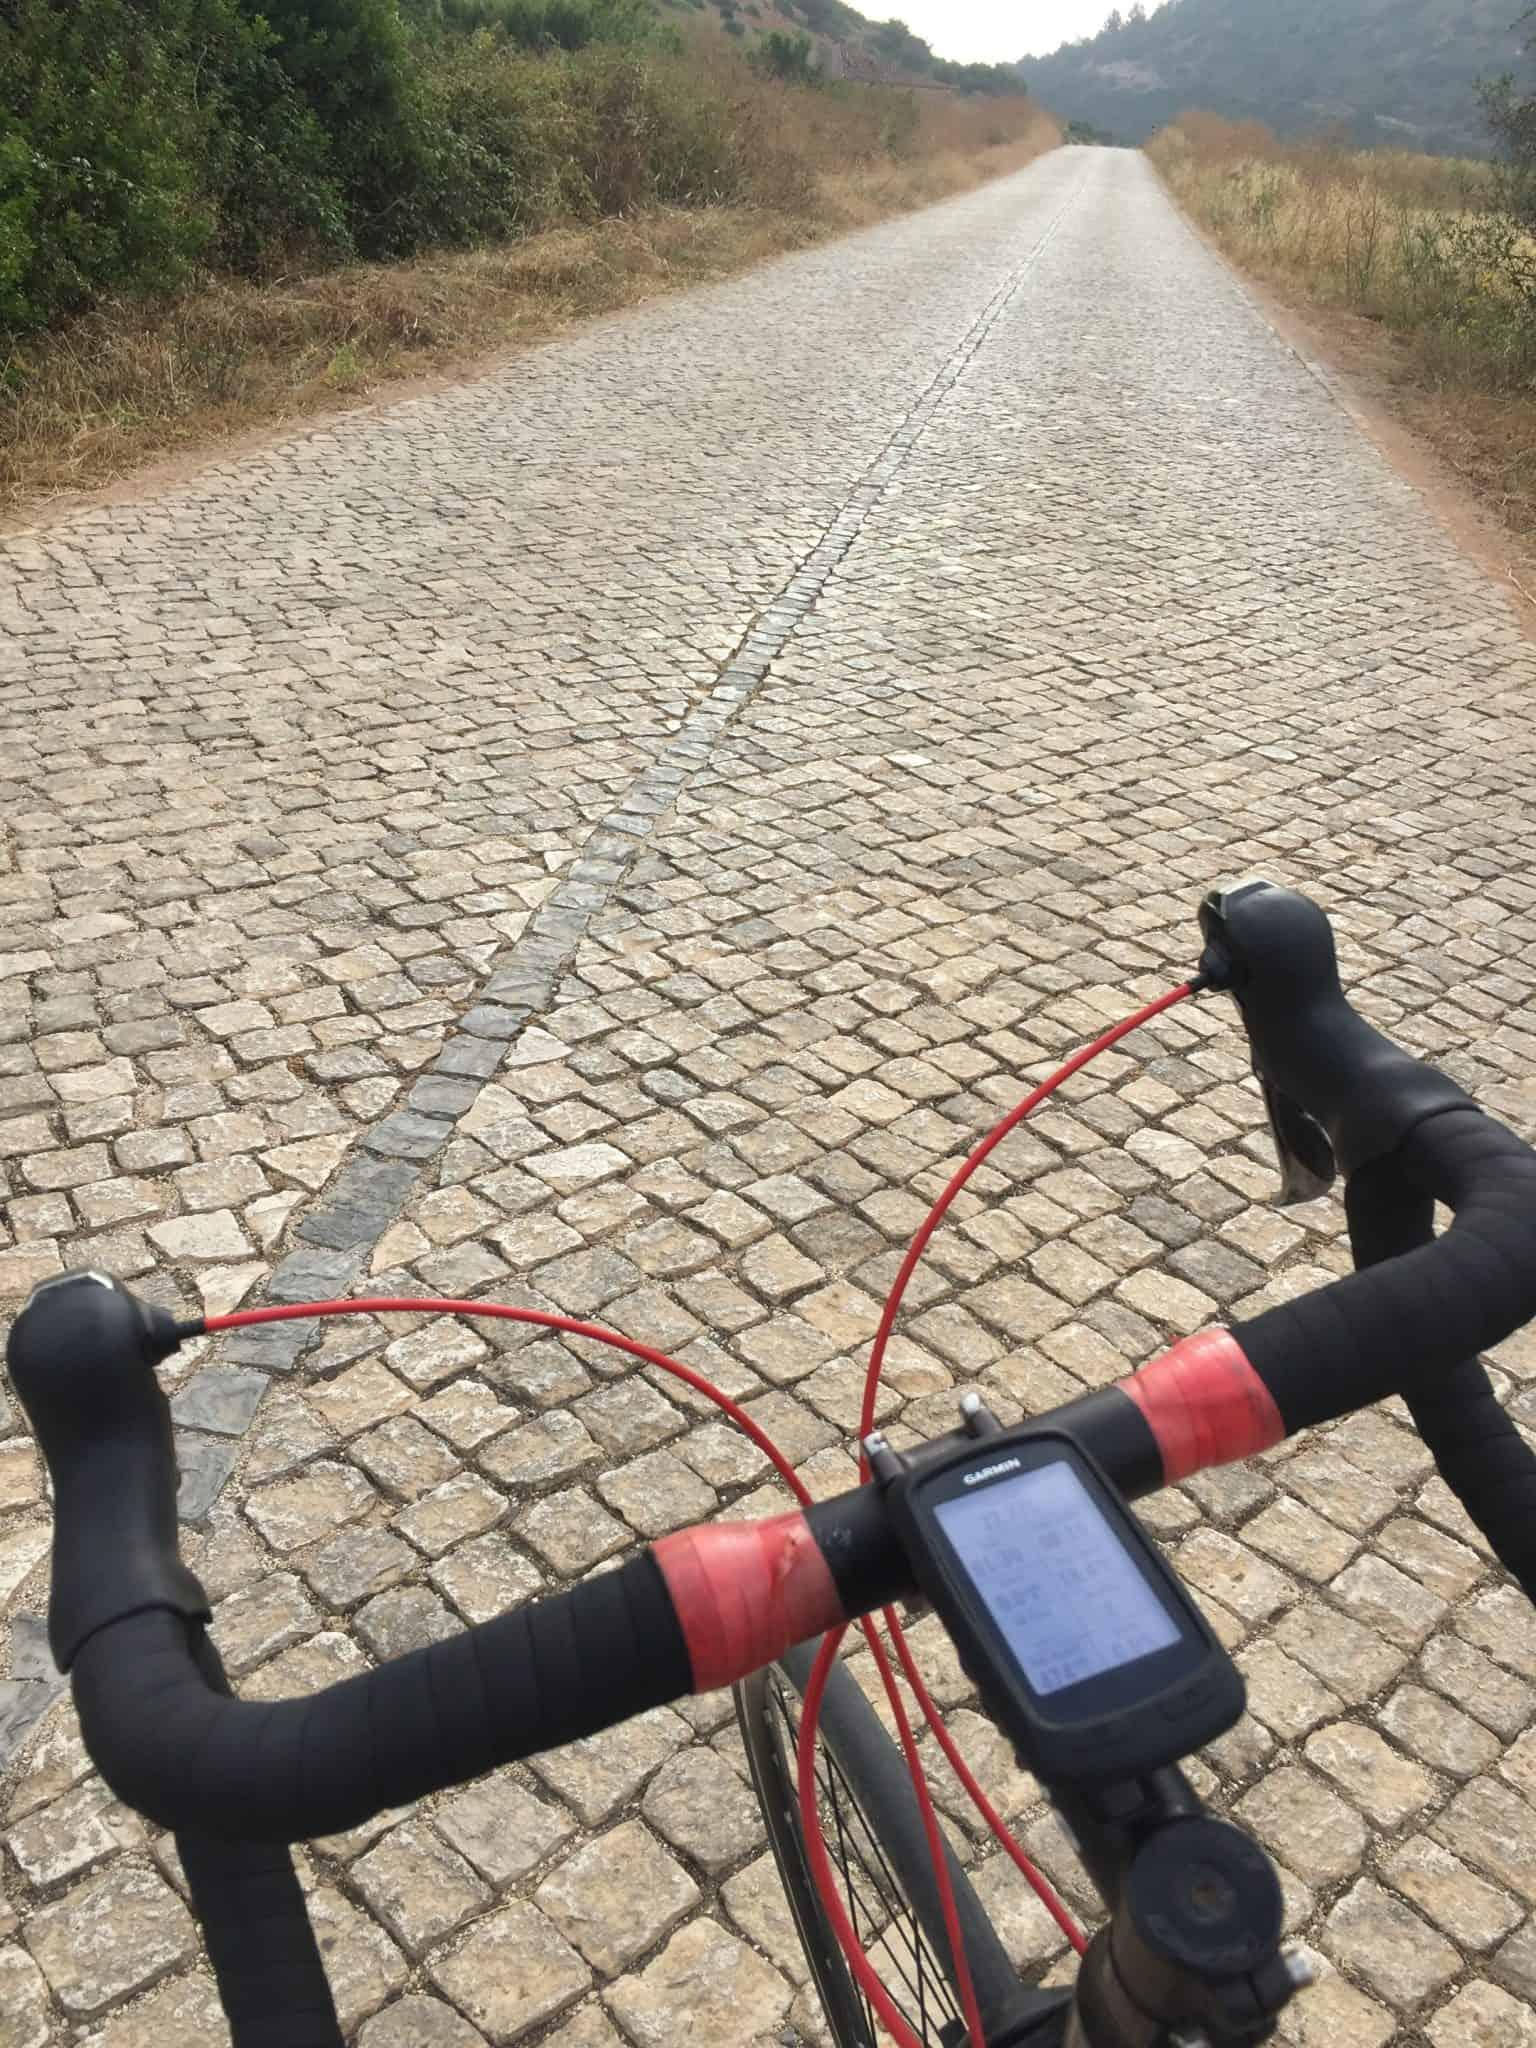 Cycling in The Algarve - Roman Road?